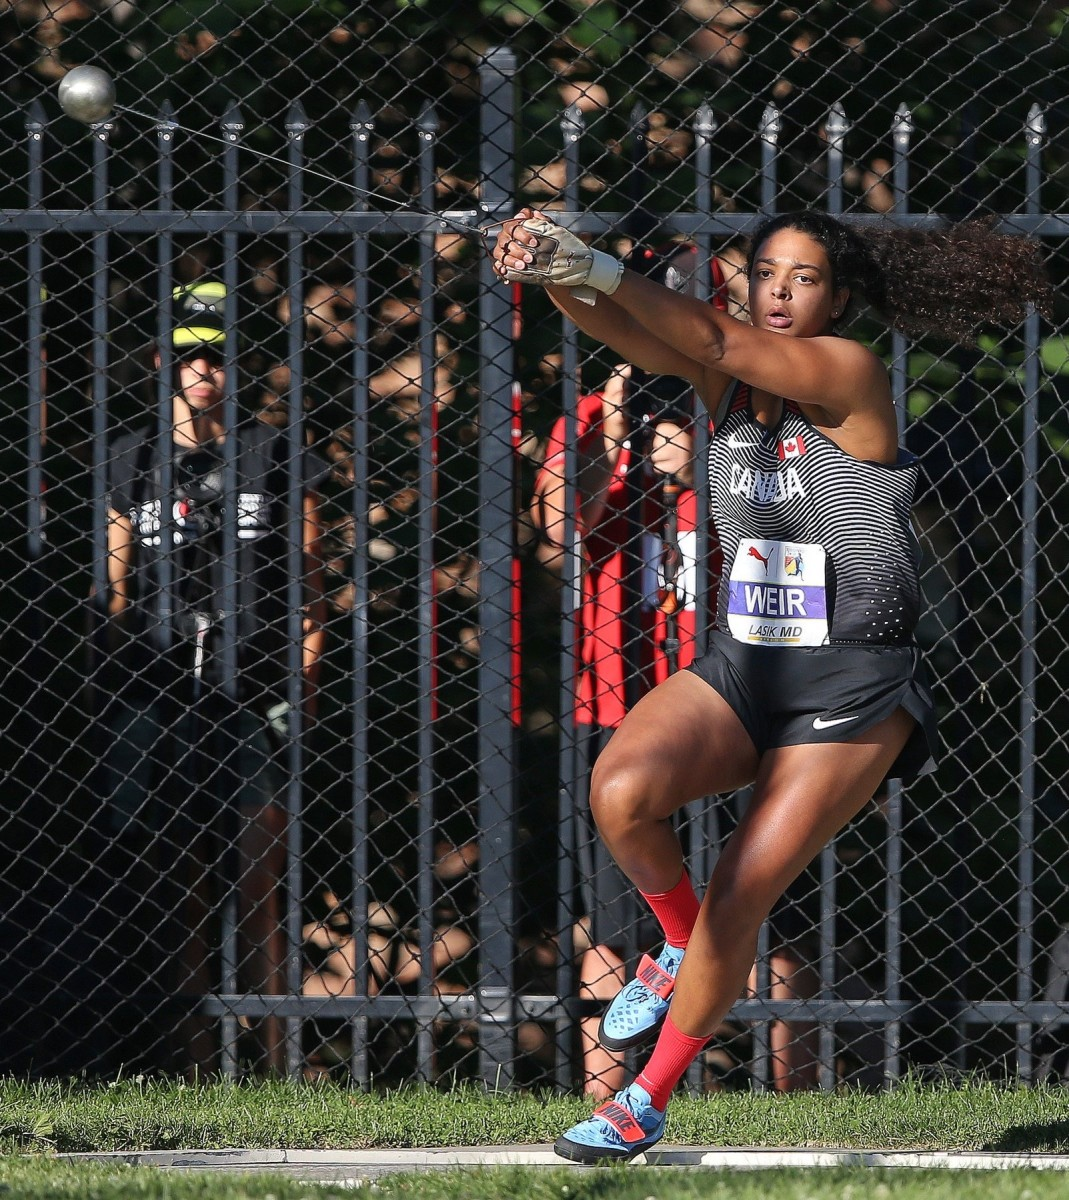 Athlete Jillian Weir is representing Canada in the hammer-throwing competition in the Olympic Games set to start July 23, 2021, in Tokyo. She's a citizen of the Mohawks of the Bay of Quinte from the Tyendinaga Territory and is among dozens of Indigenous athletes participating in the games. (Photo courtesy of Claus Andersen)